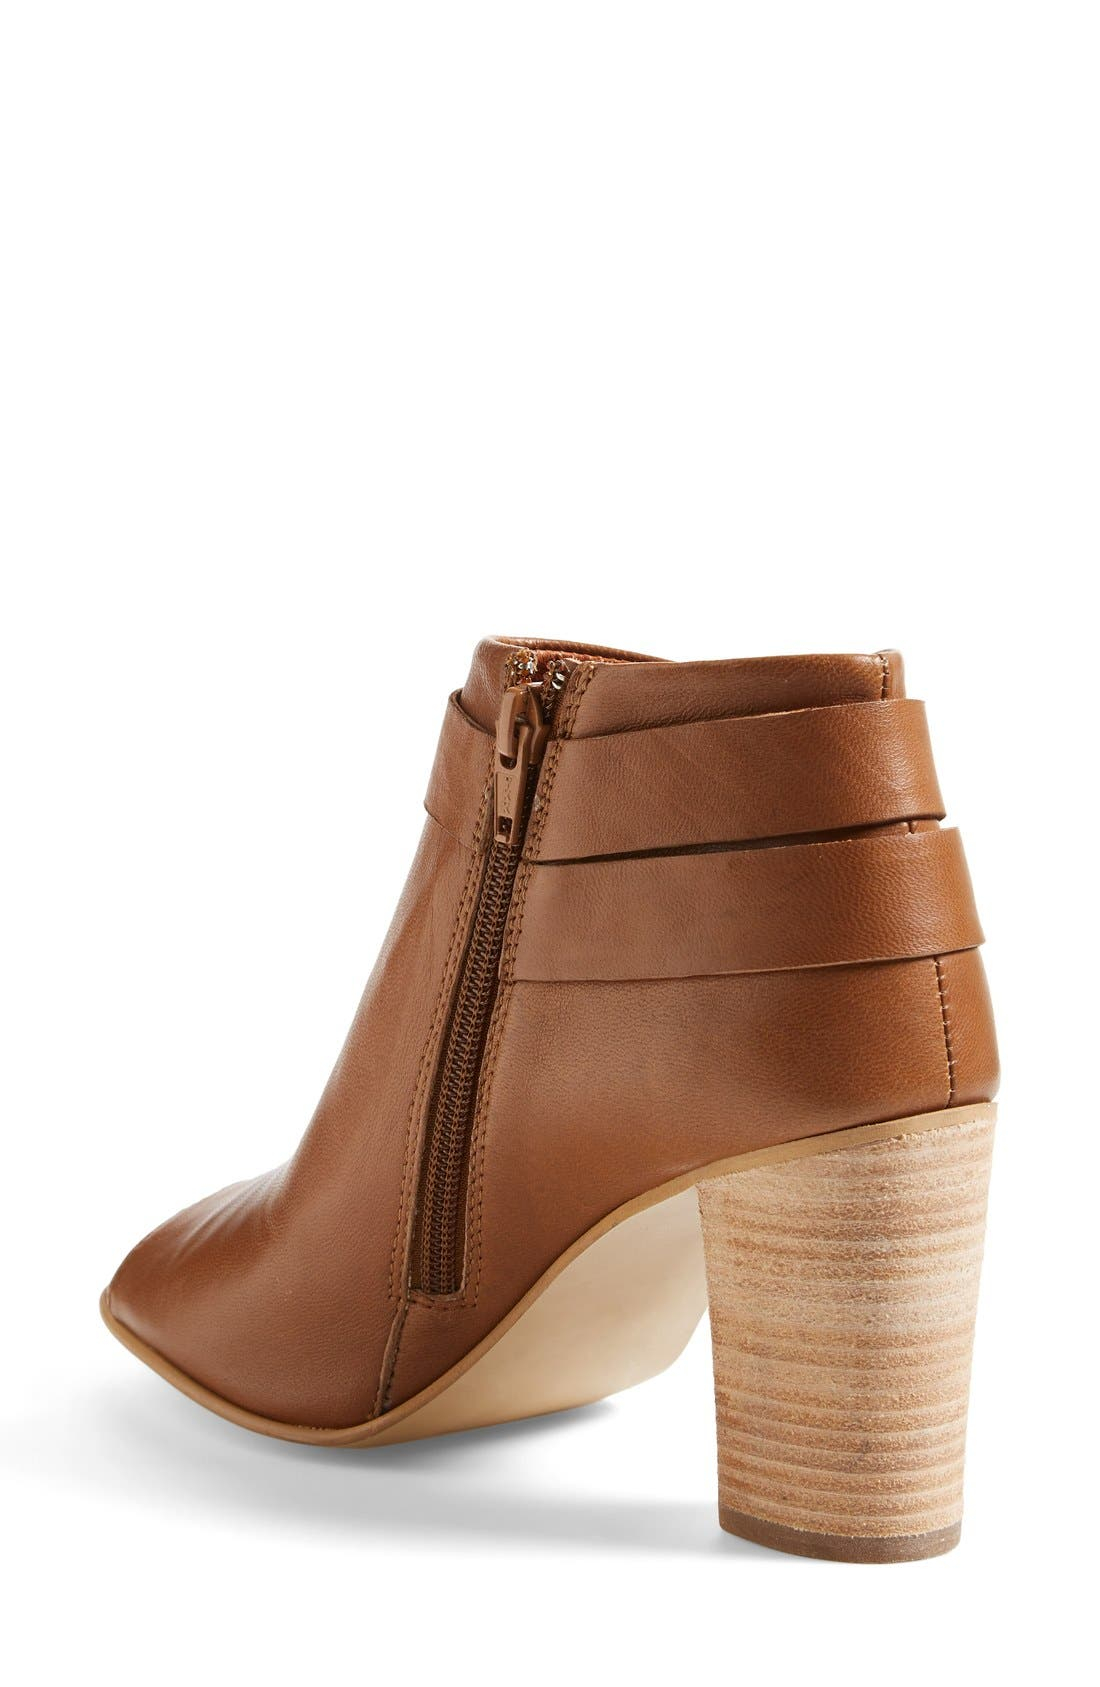 Alternate Image 2  - Steve Madden 'Now' Open Toe Bootie (Women)